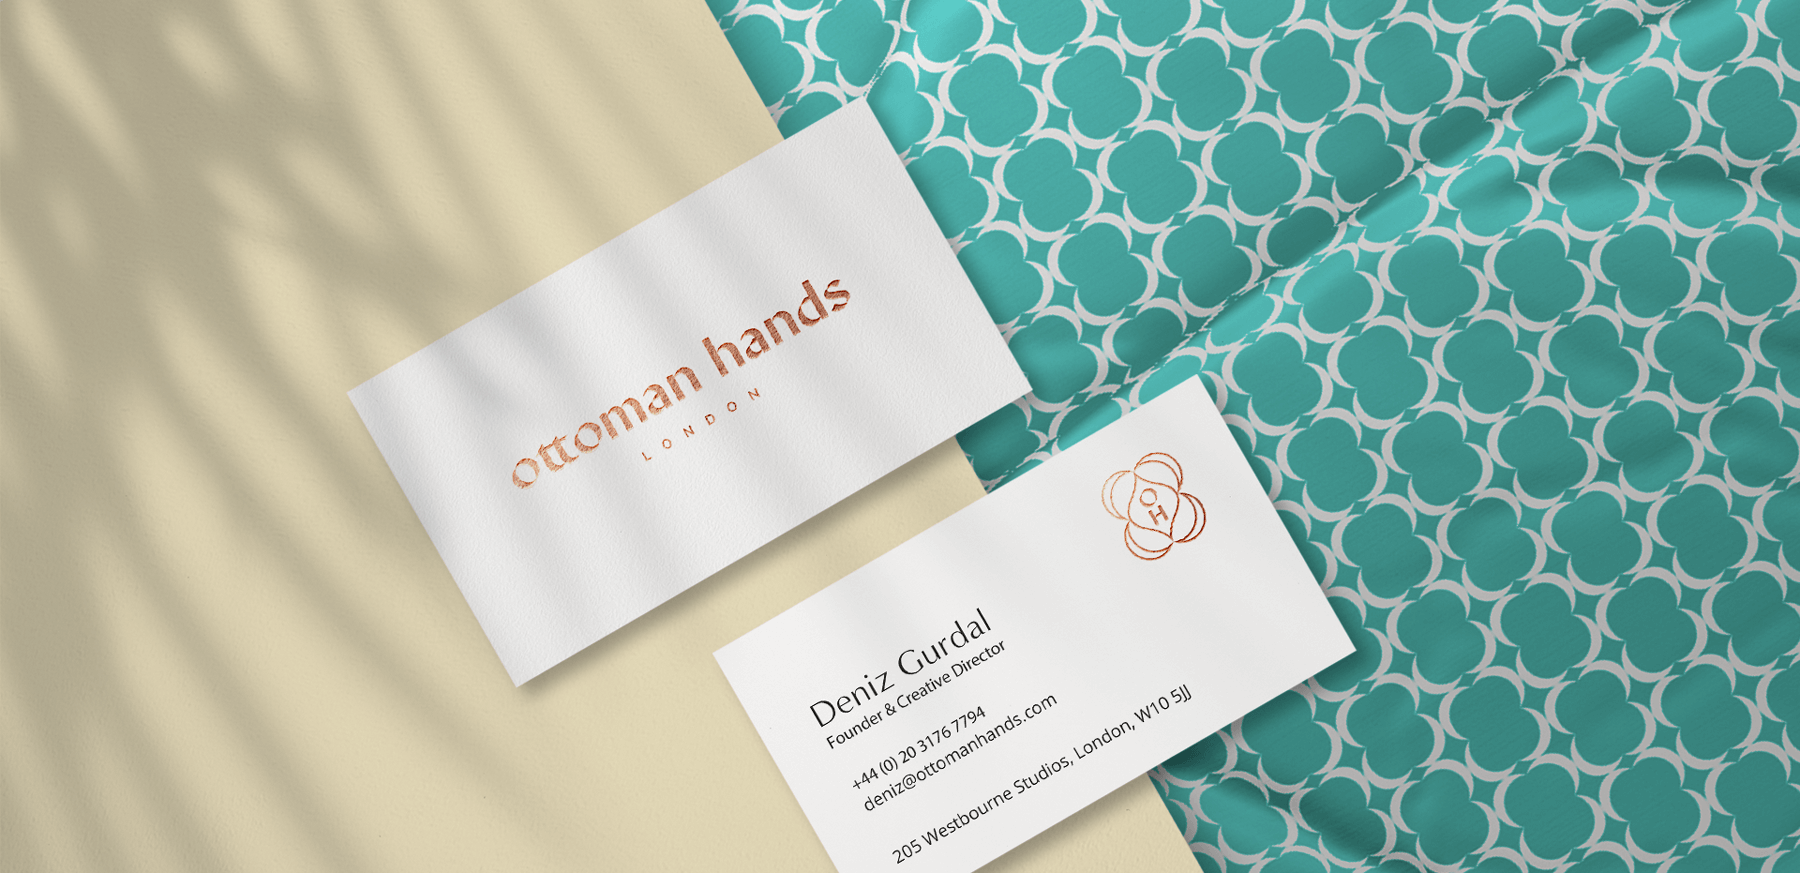 Business Cards for Ottoman Hands in a mock up on a textured material